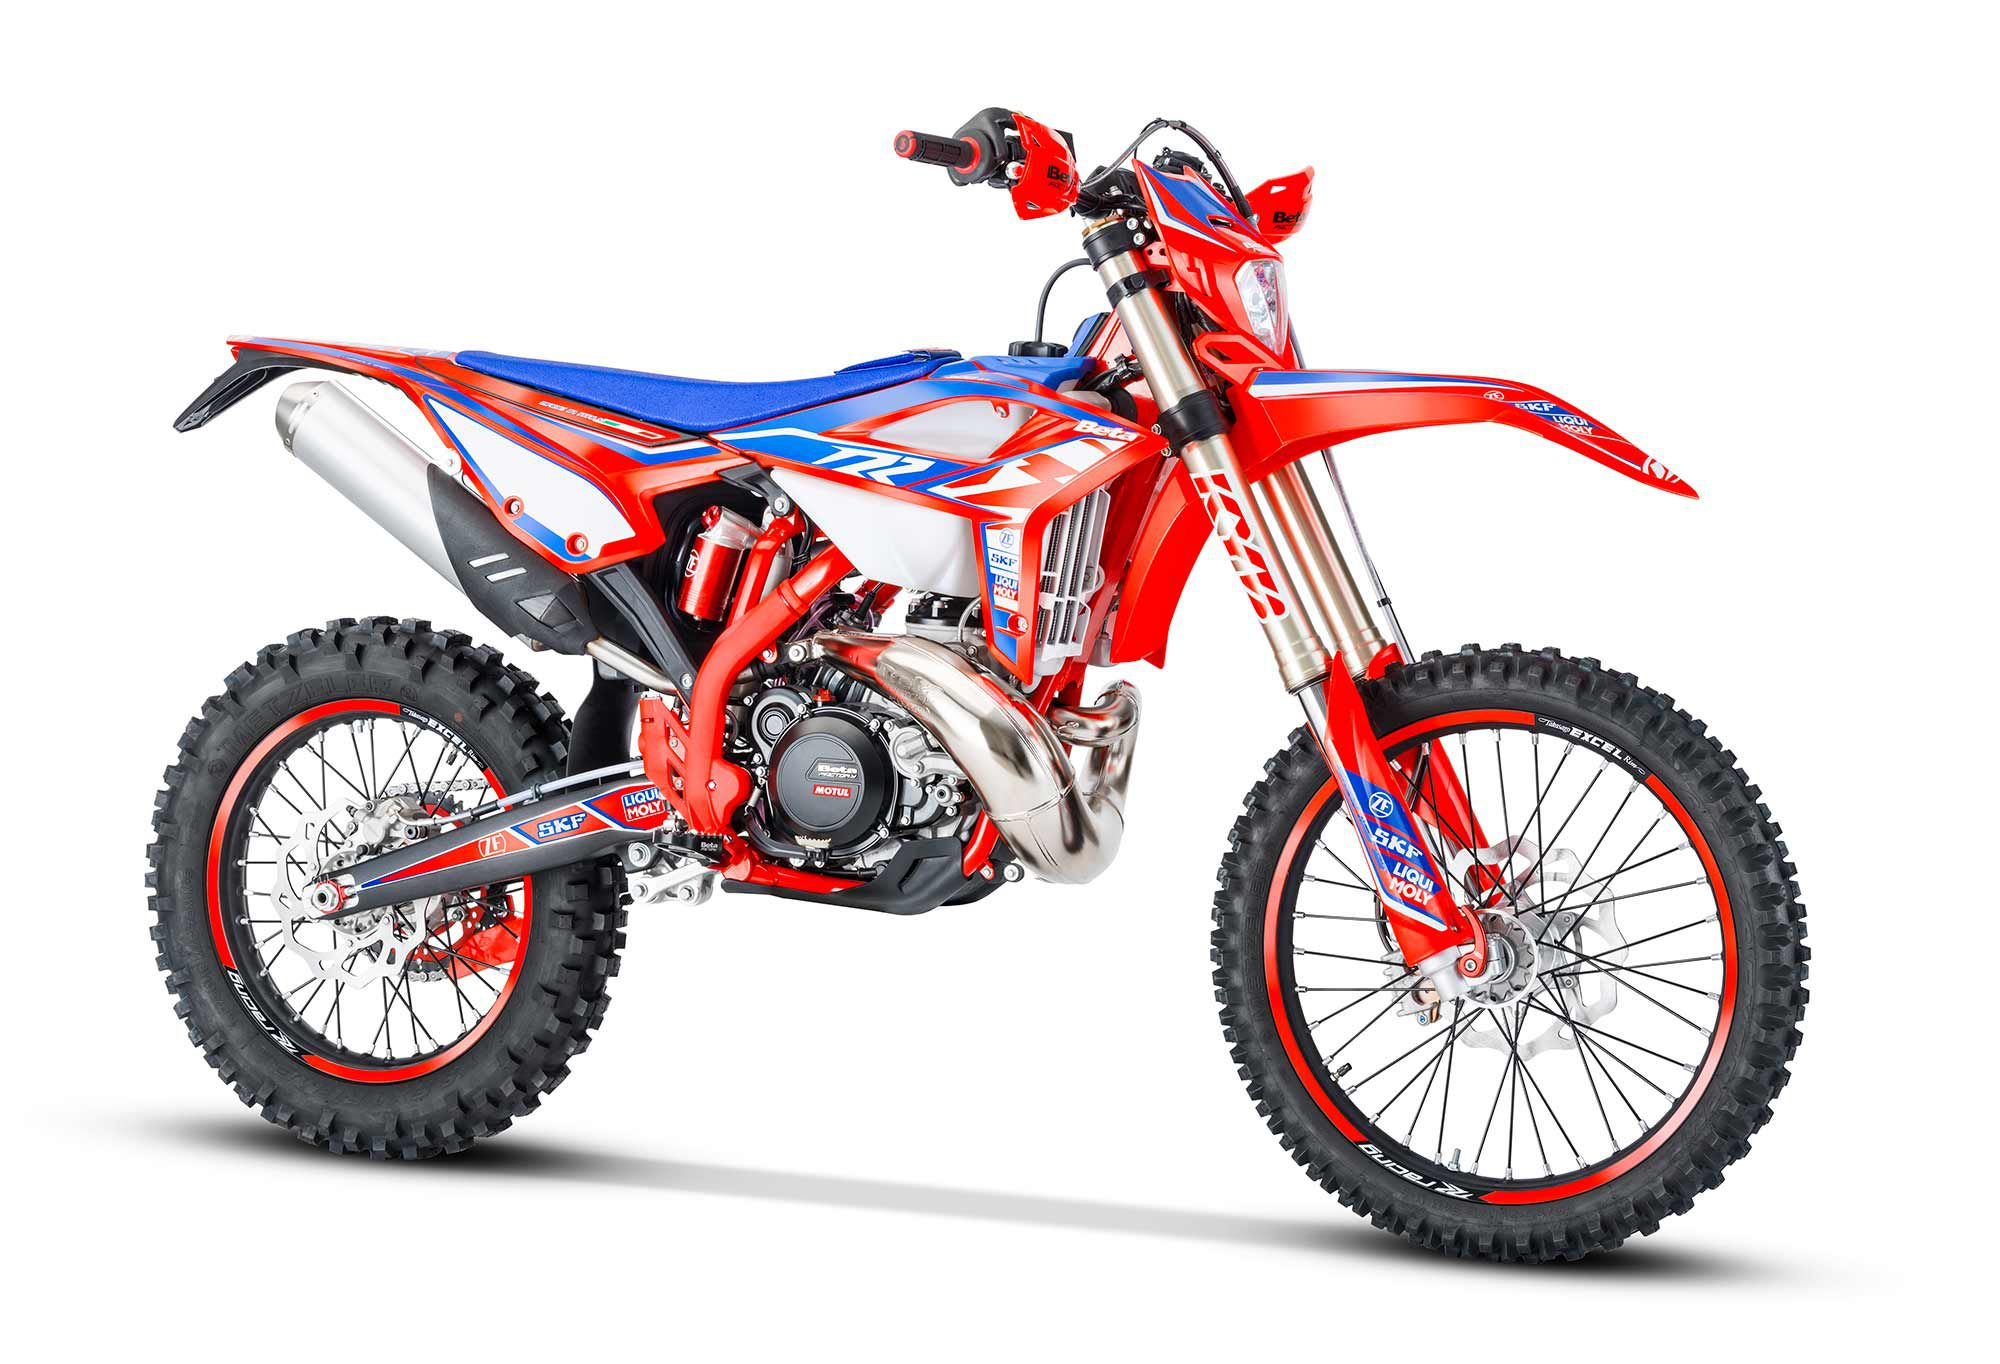 2022 Beta Race Edition Off-Road Motorcycles First Look